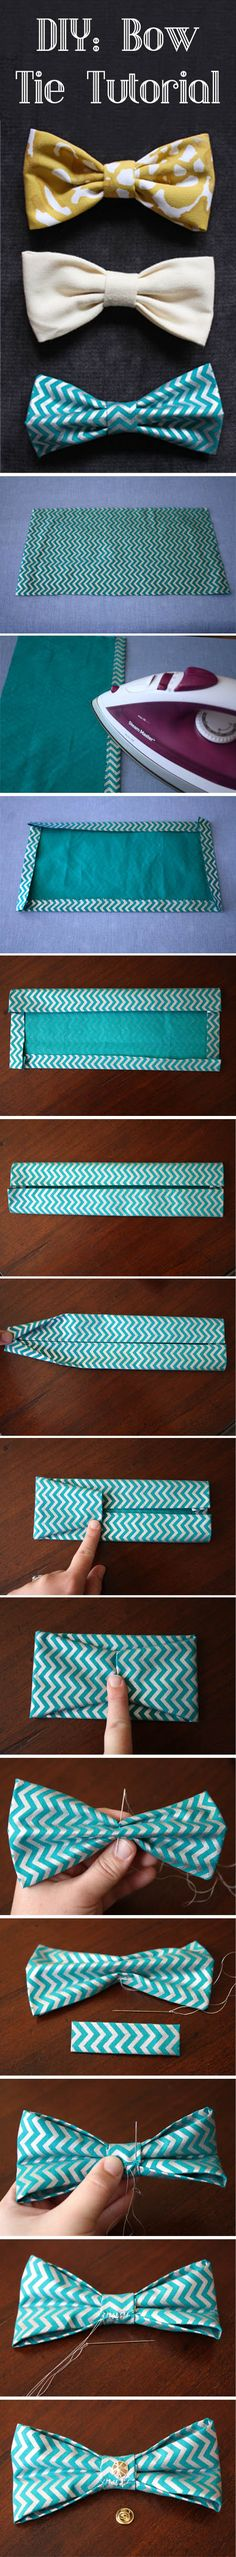 DIY bow tie tutorial. Great for dogs or husbands! ThisHouseIsOurHome.blogspot.com